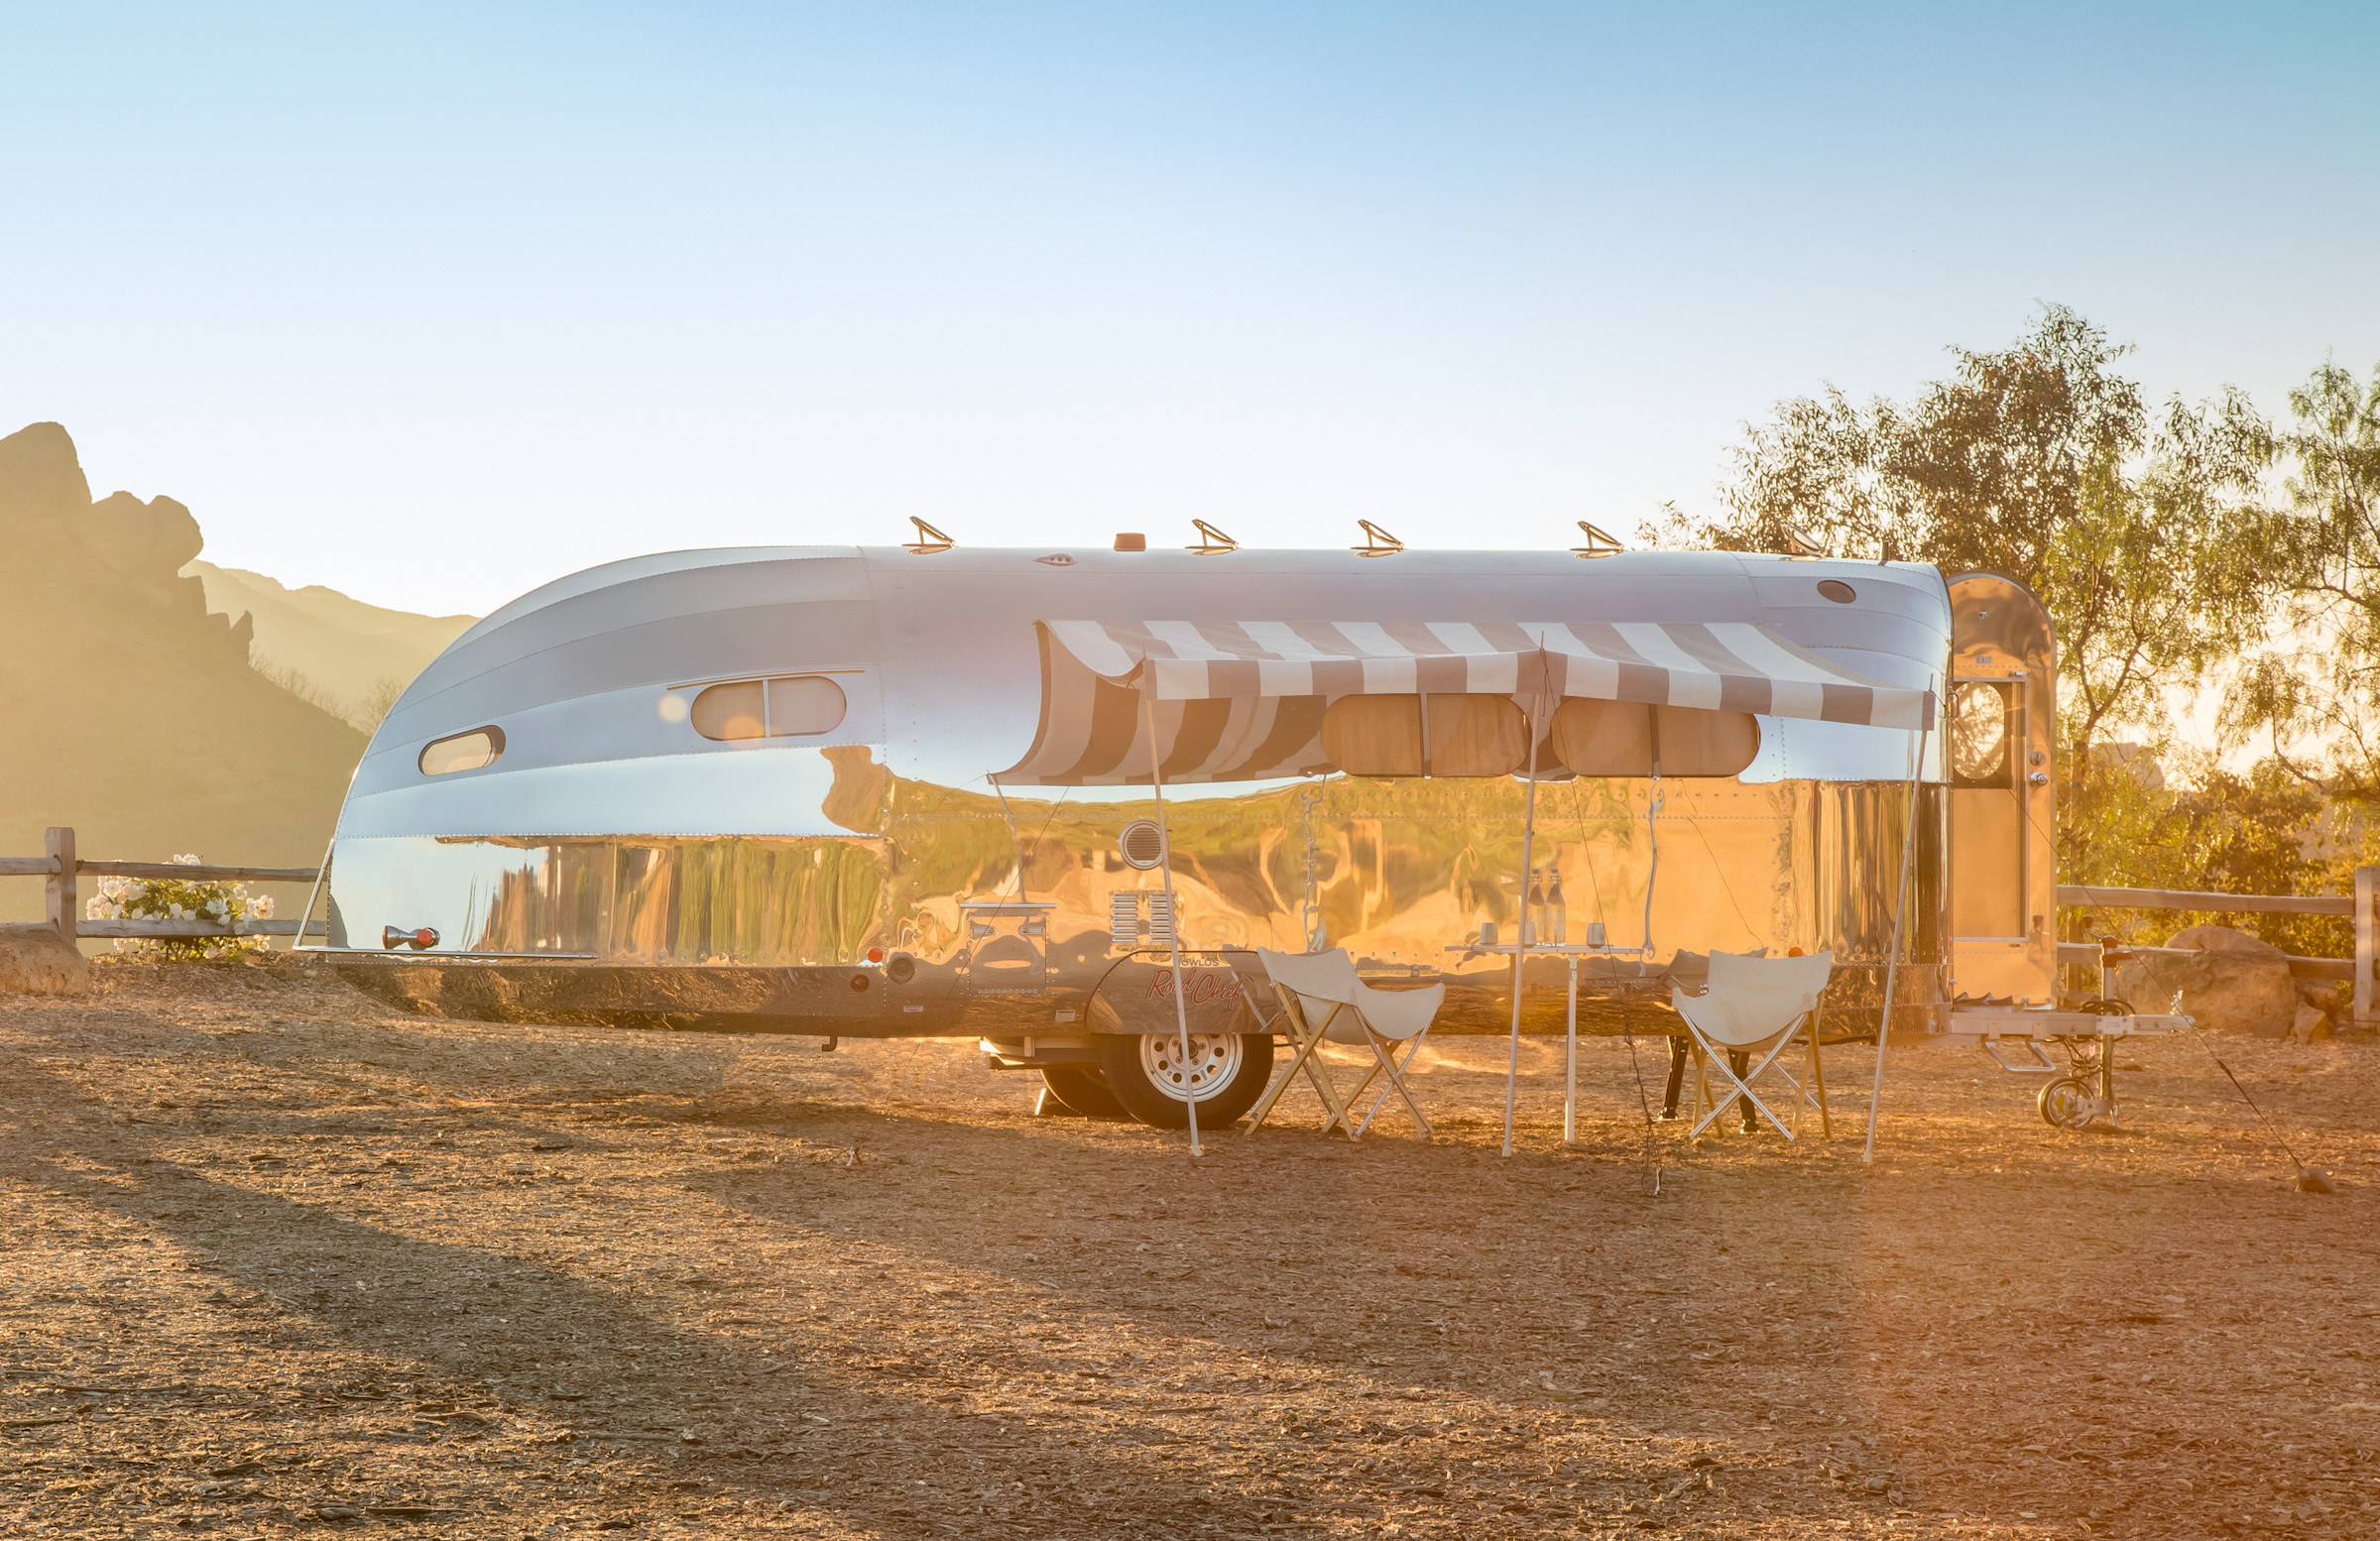 Bowlus Road Chief - The Endless Highways